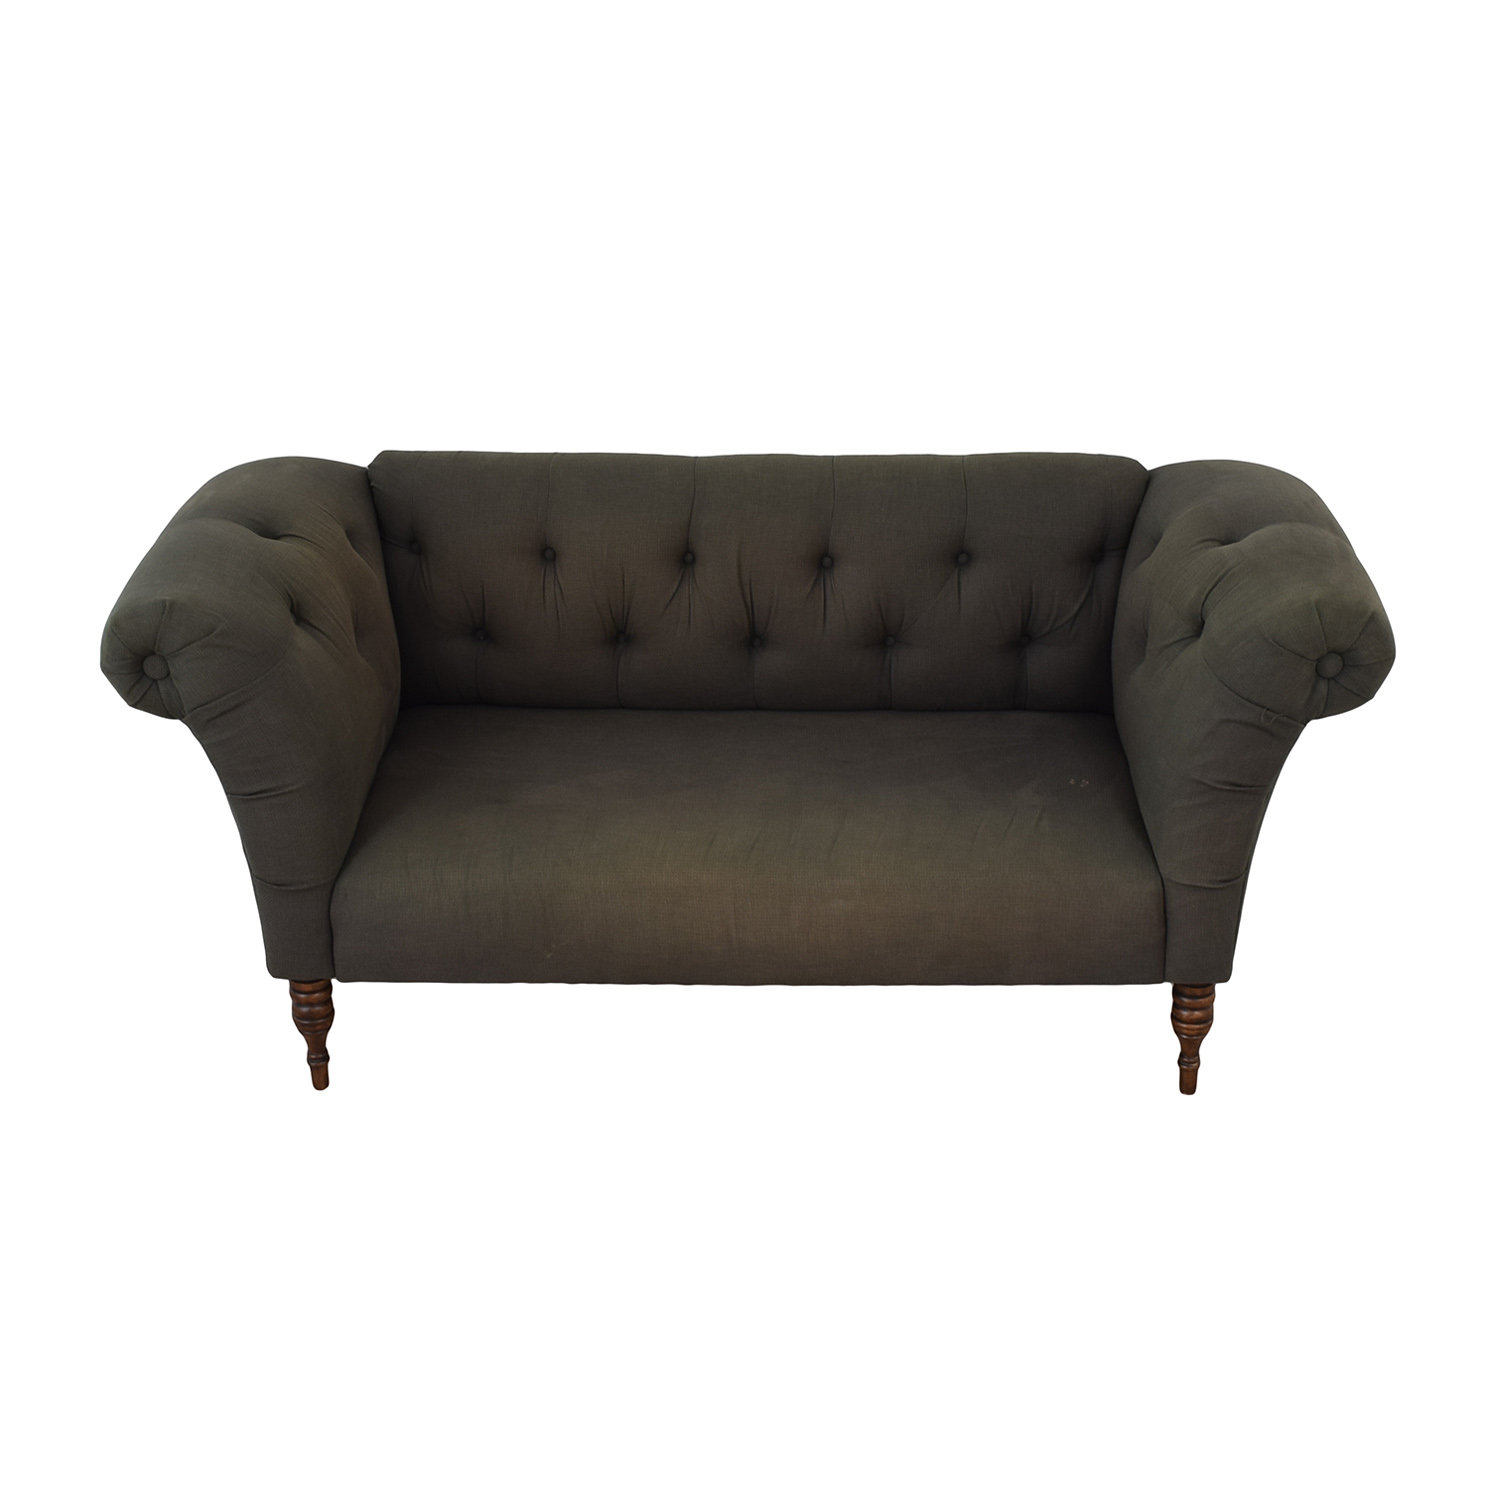 Urban Outfitters Urban Outfitters Grey Tufted Sofa